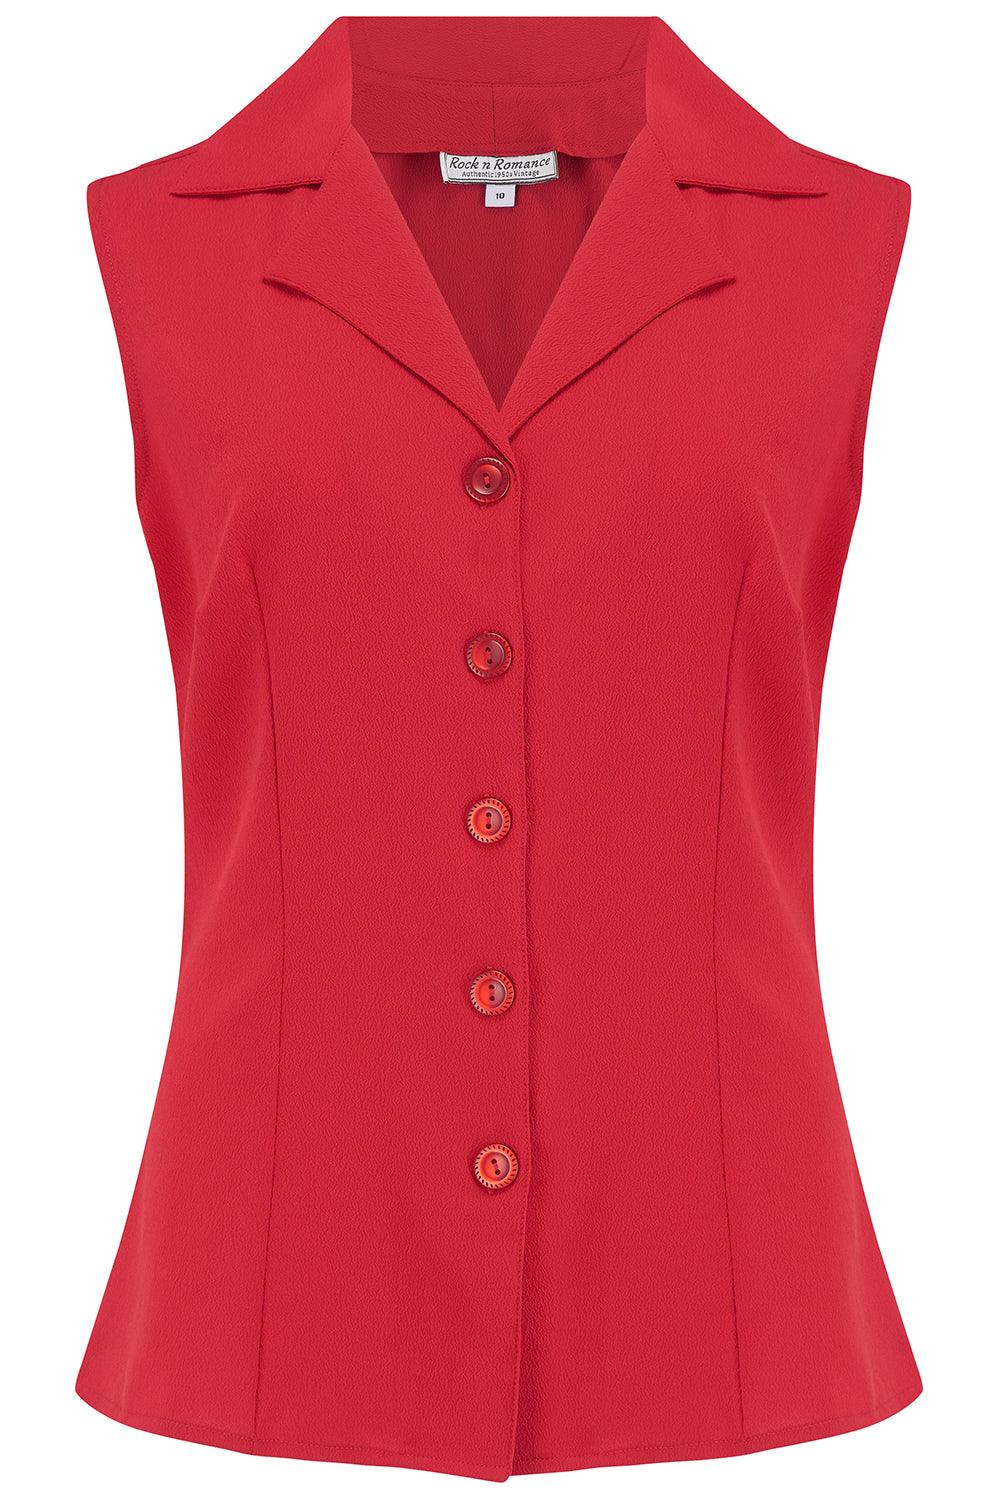 "**Sample Sale** The ""Gladys"" Sleeveless Summer Blouse in Solid Red, Classic Vintage 1950s Inspired Style - RocknRomance True 1940s & 1950s Vintage Style"